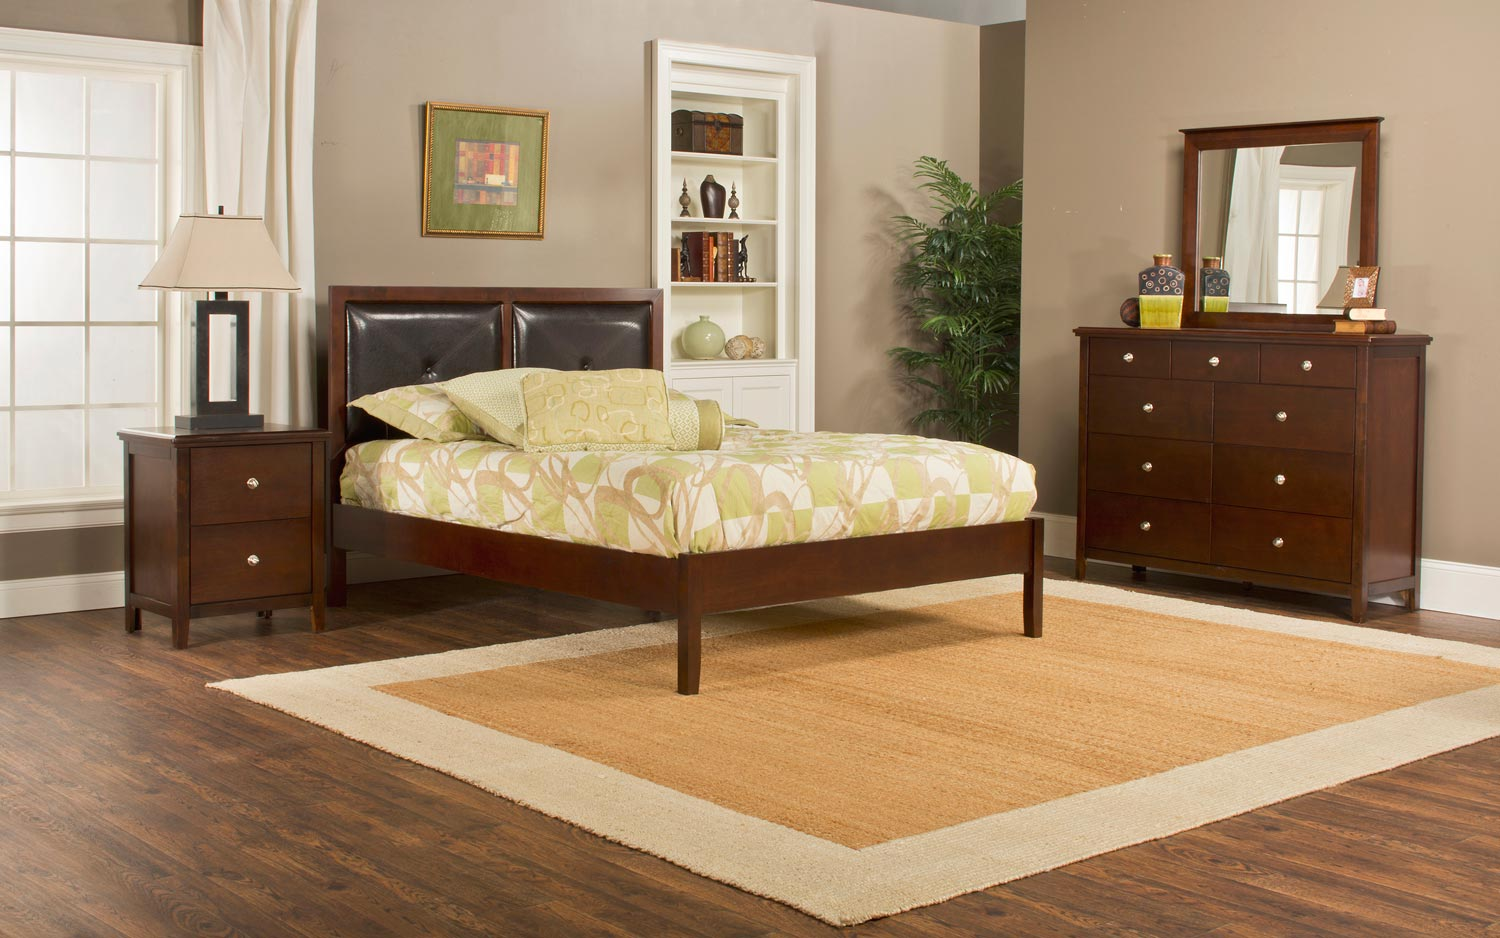 Hillsdale Metro Martin Platform 4-Piece Bedroom Collection - Cherry